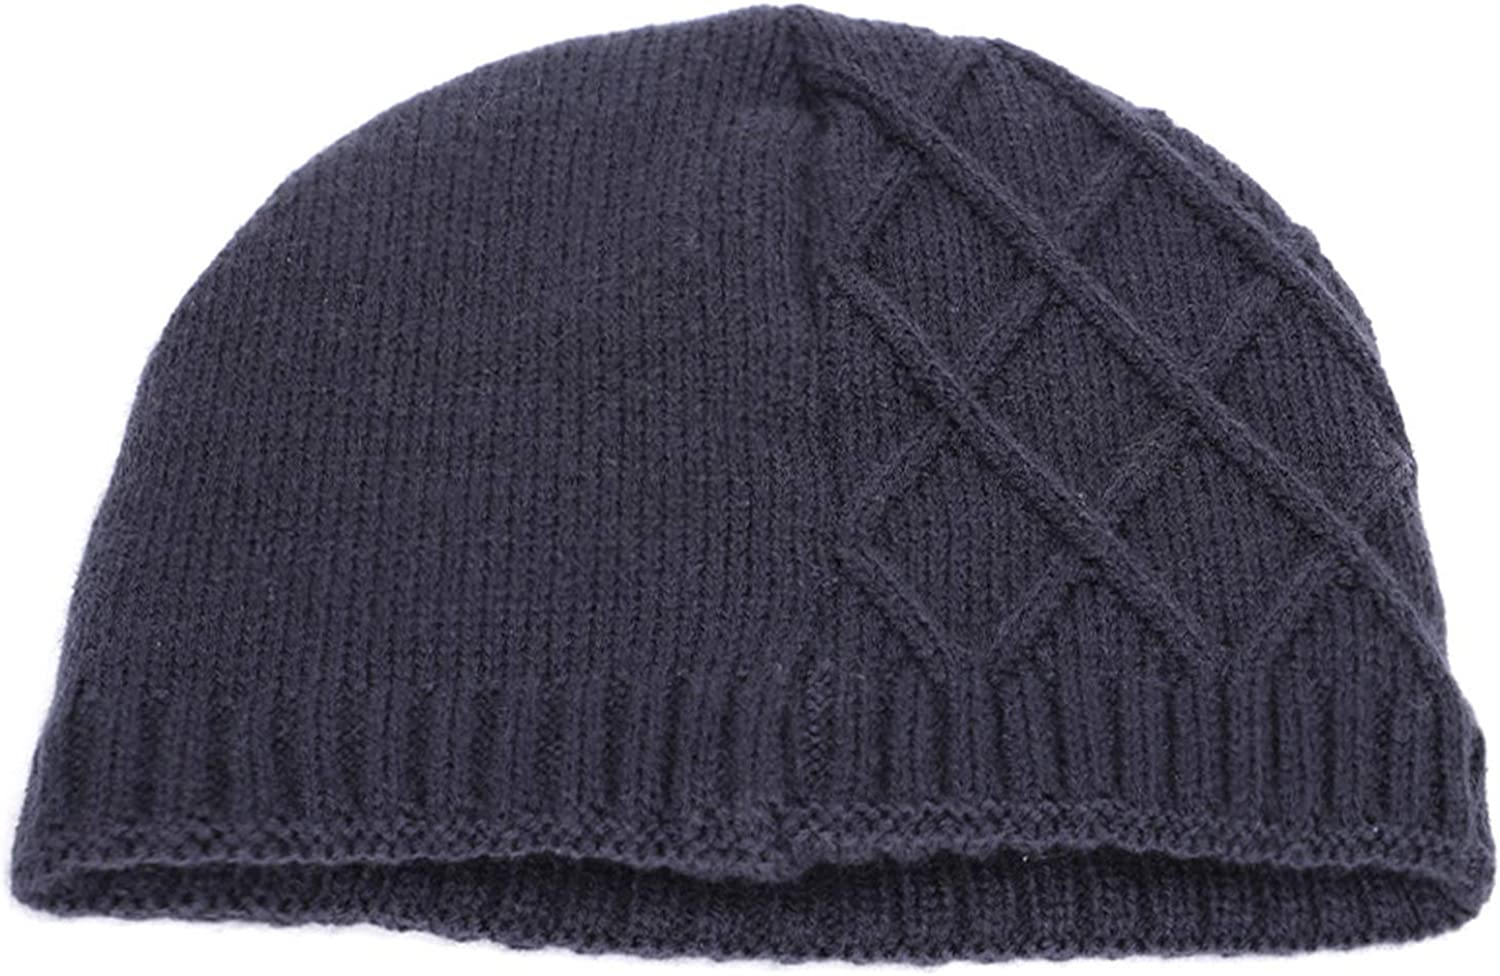 Winter Mens Knit Hats Plus Velvet Thick Warm and Comfortable Loose Delicate Embroidery caps